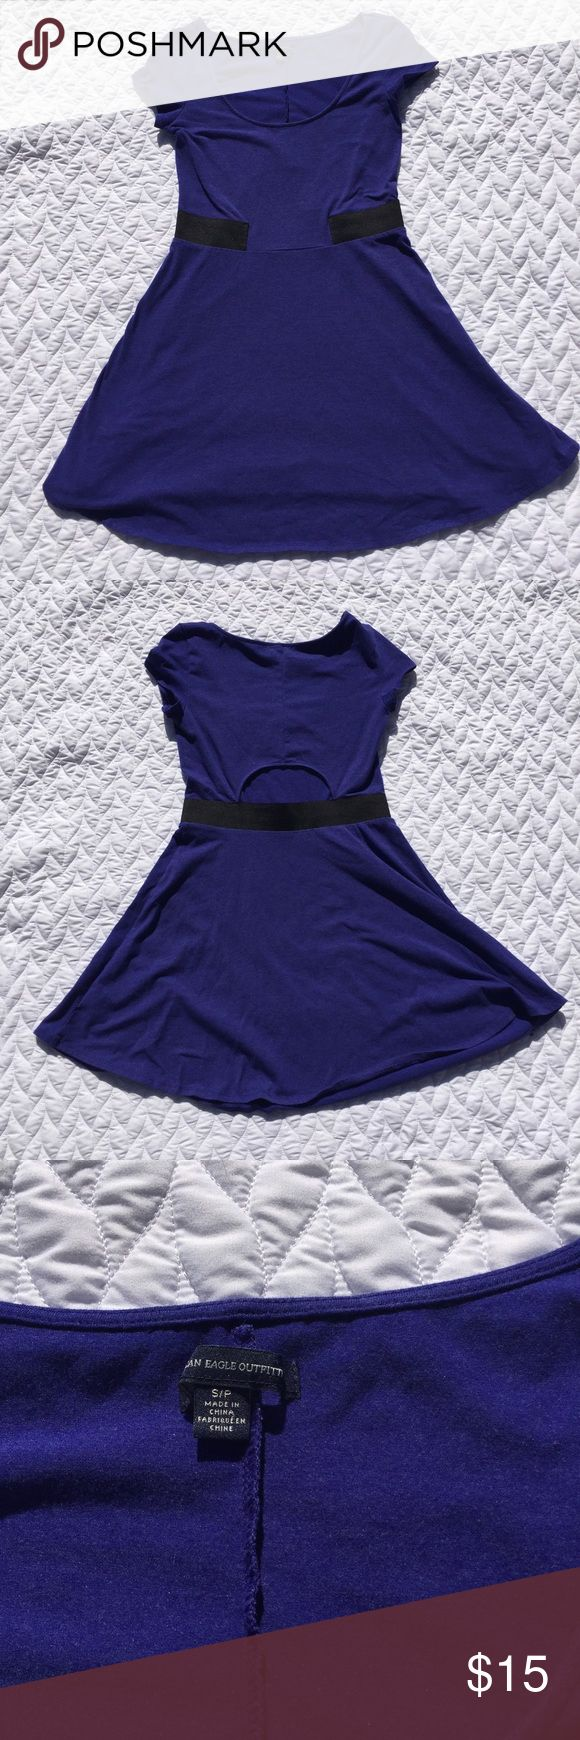 America Eagle Cutout Dress Great for this summer! In great condition. Has a cutout on the lower back portion of the dress. American Eagle Outfitters Dresses